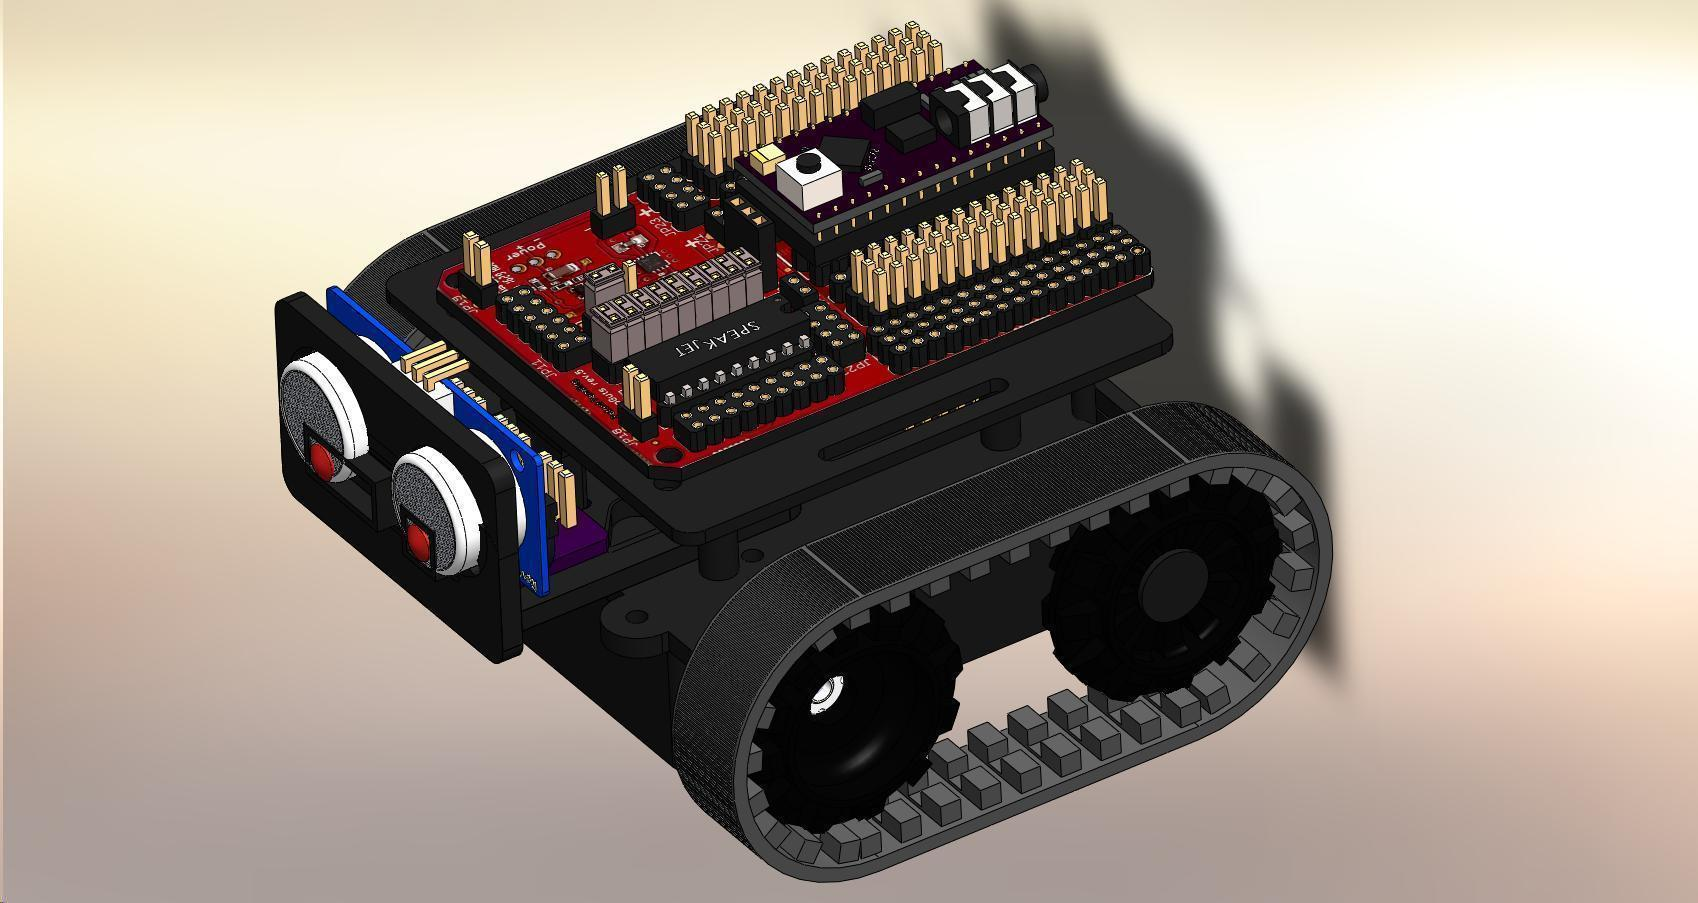 3d Printed Zumo Chassis Dc Motor Driver Roboguts Picaxe To Make A Circuit Board Using Diode Laser With Printer 28x2 By Wperko Pinshape